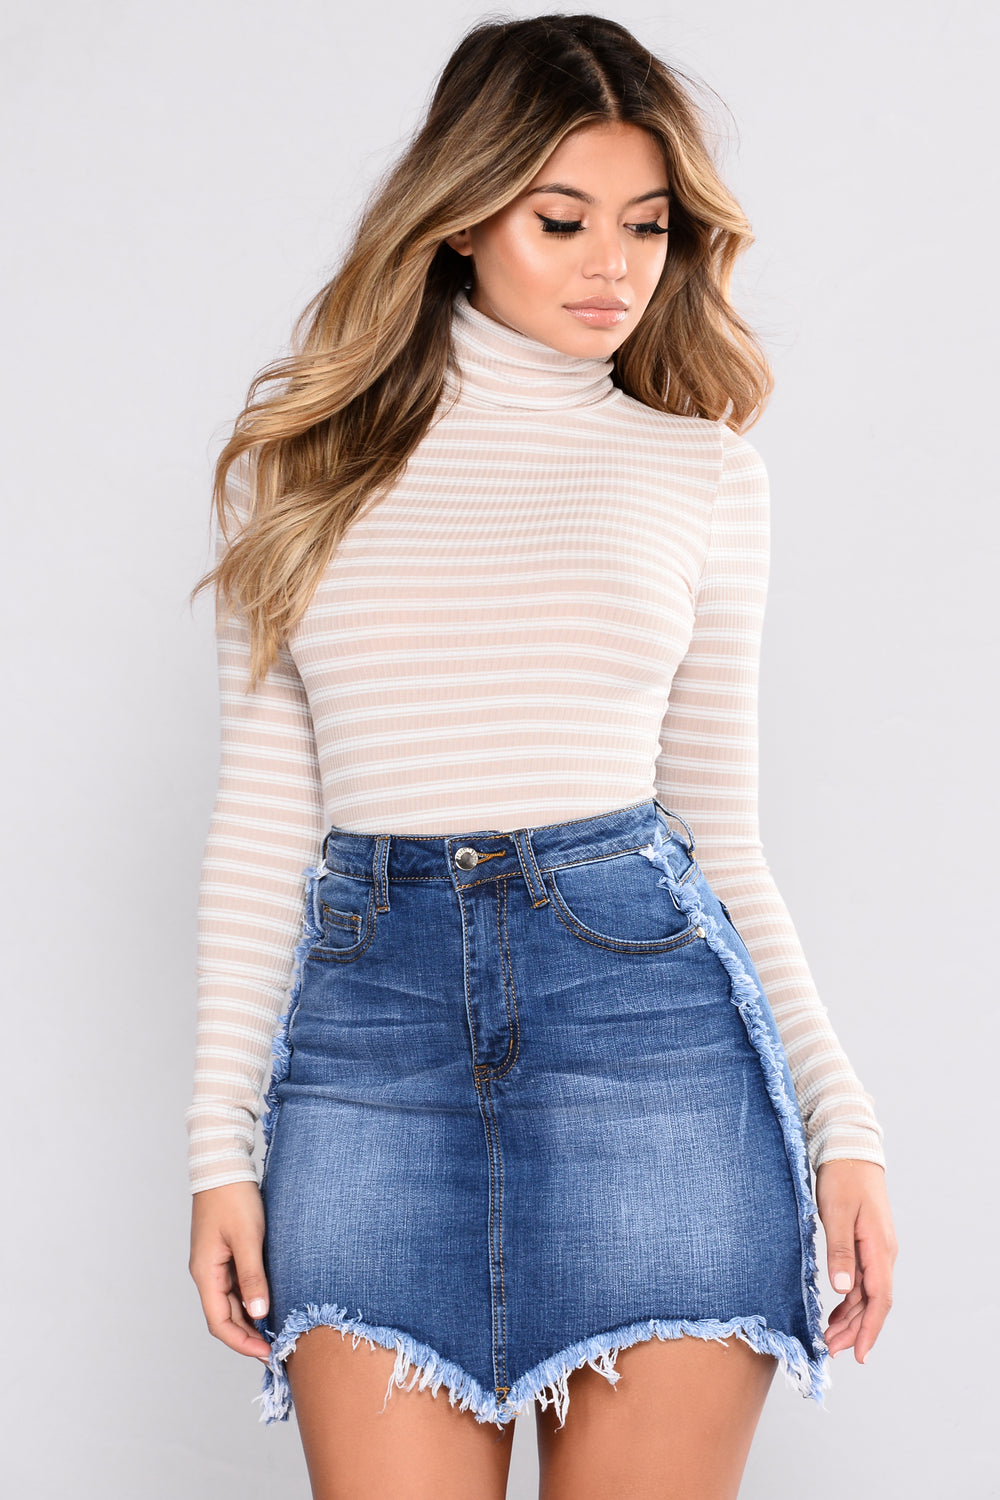 Not Replaceable Turtleneck Top - Taupe